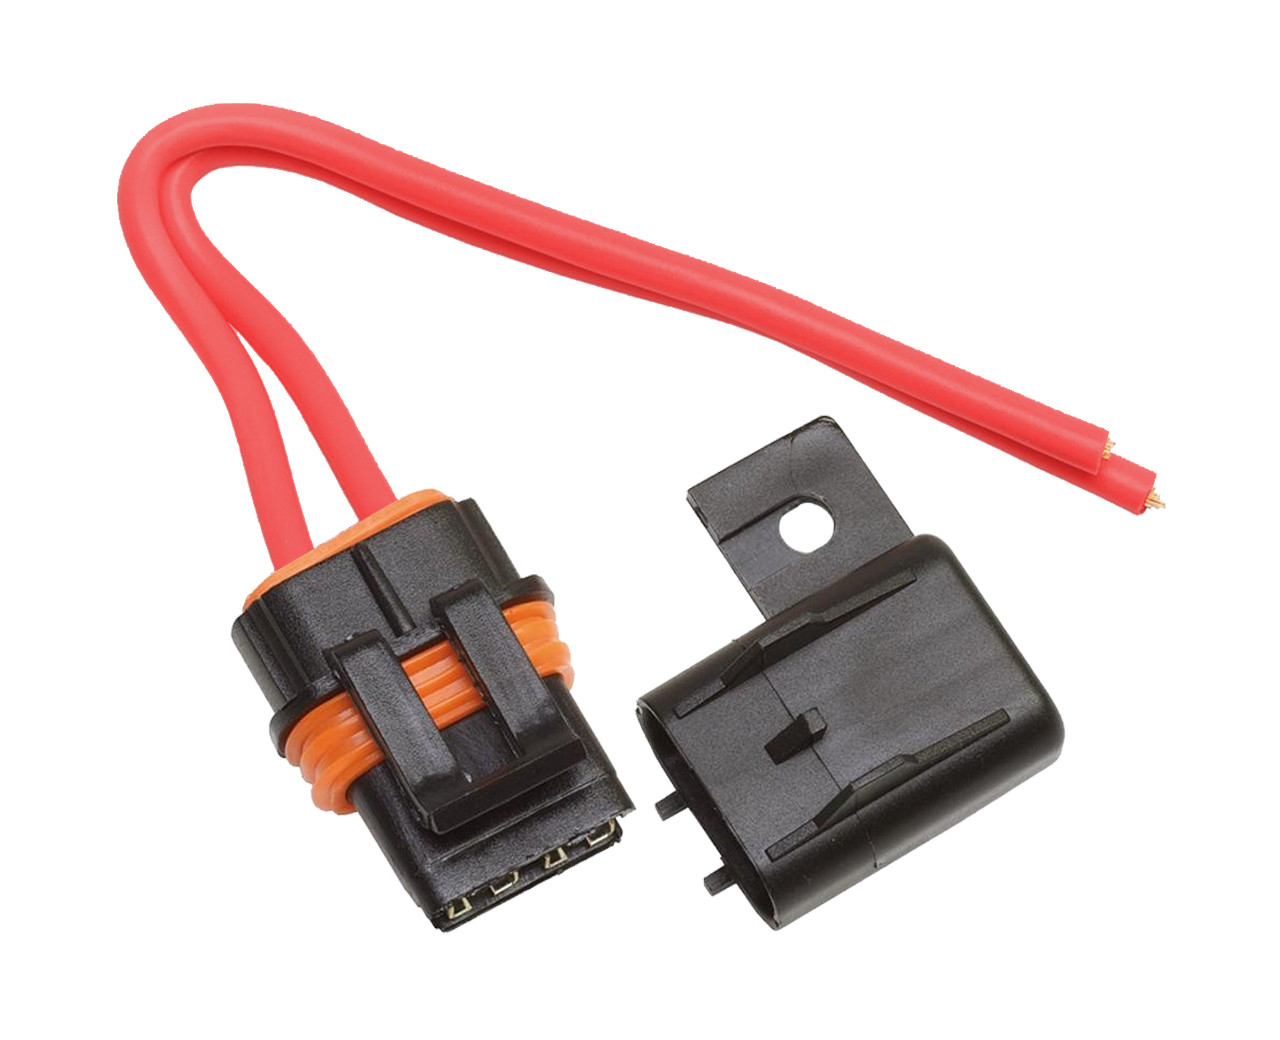 atc ato fuse holder up to a 40 amp fuse 10 awg leadwaterproof maxi fuse [ 1280 x 1040 Pixel ]